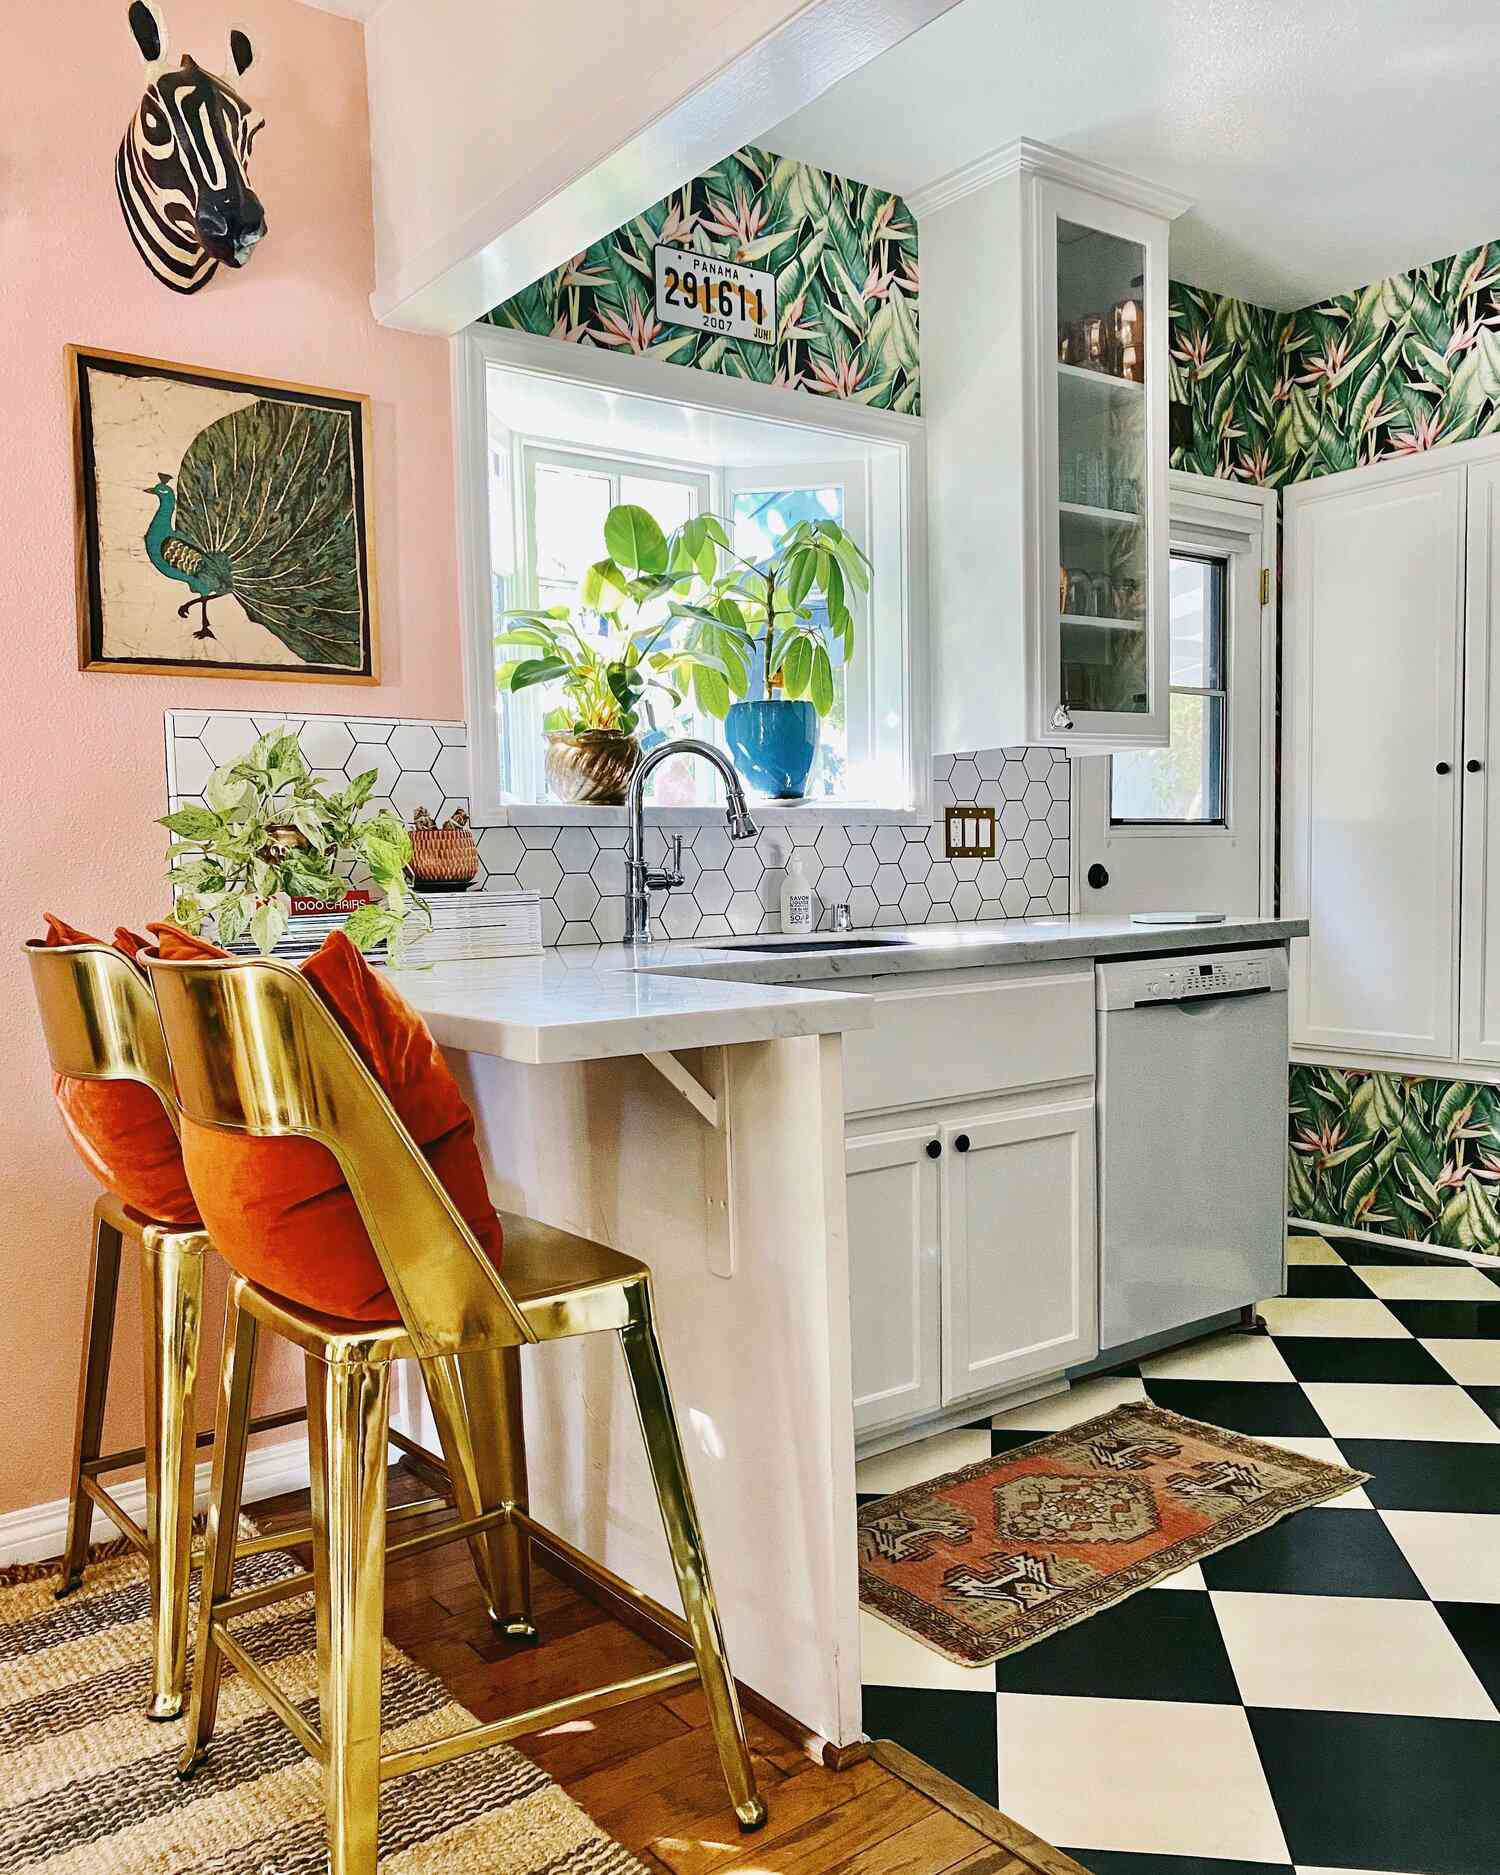 best kitchen ideas - maximalist kitchen with bold colors and mixed patterns